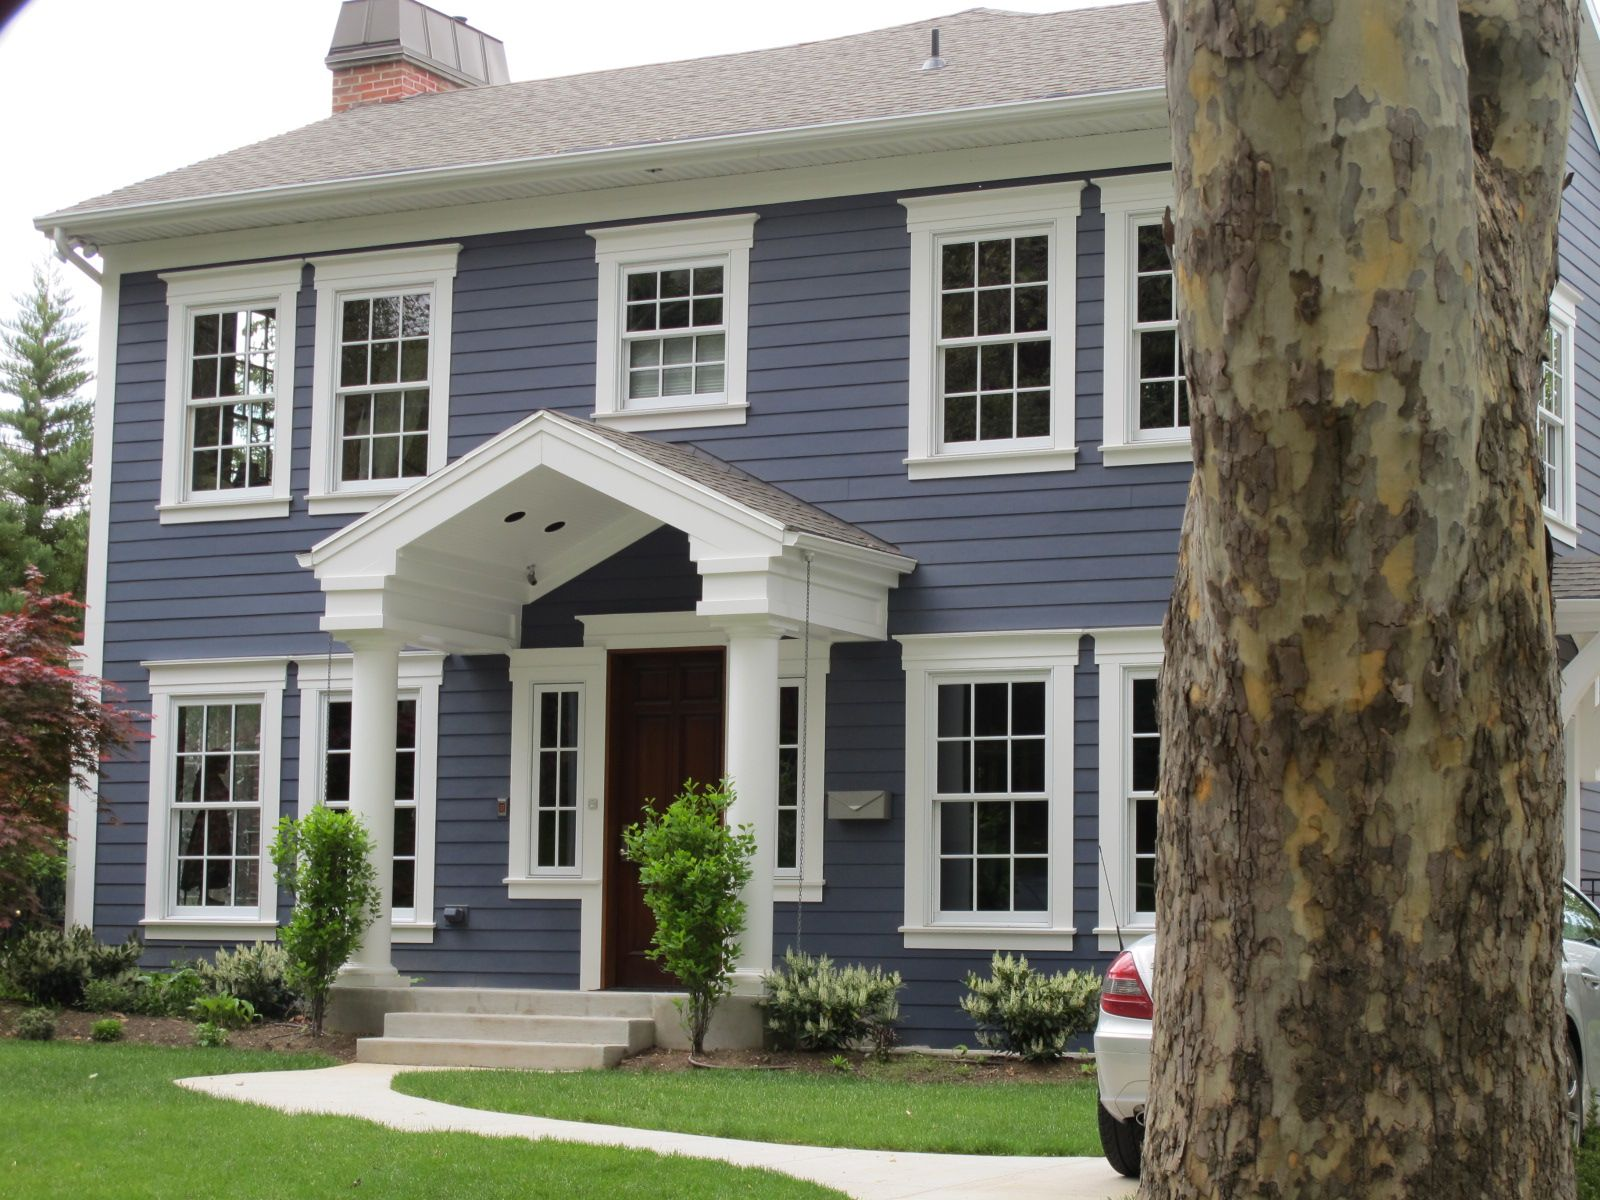 Exterior update blue siding white trim wood door yard exterior pinterest blue - Exterior paint colours for wood pict ...